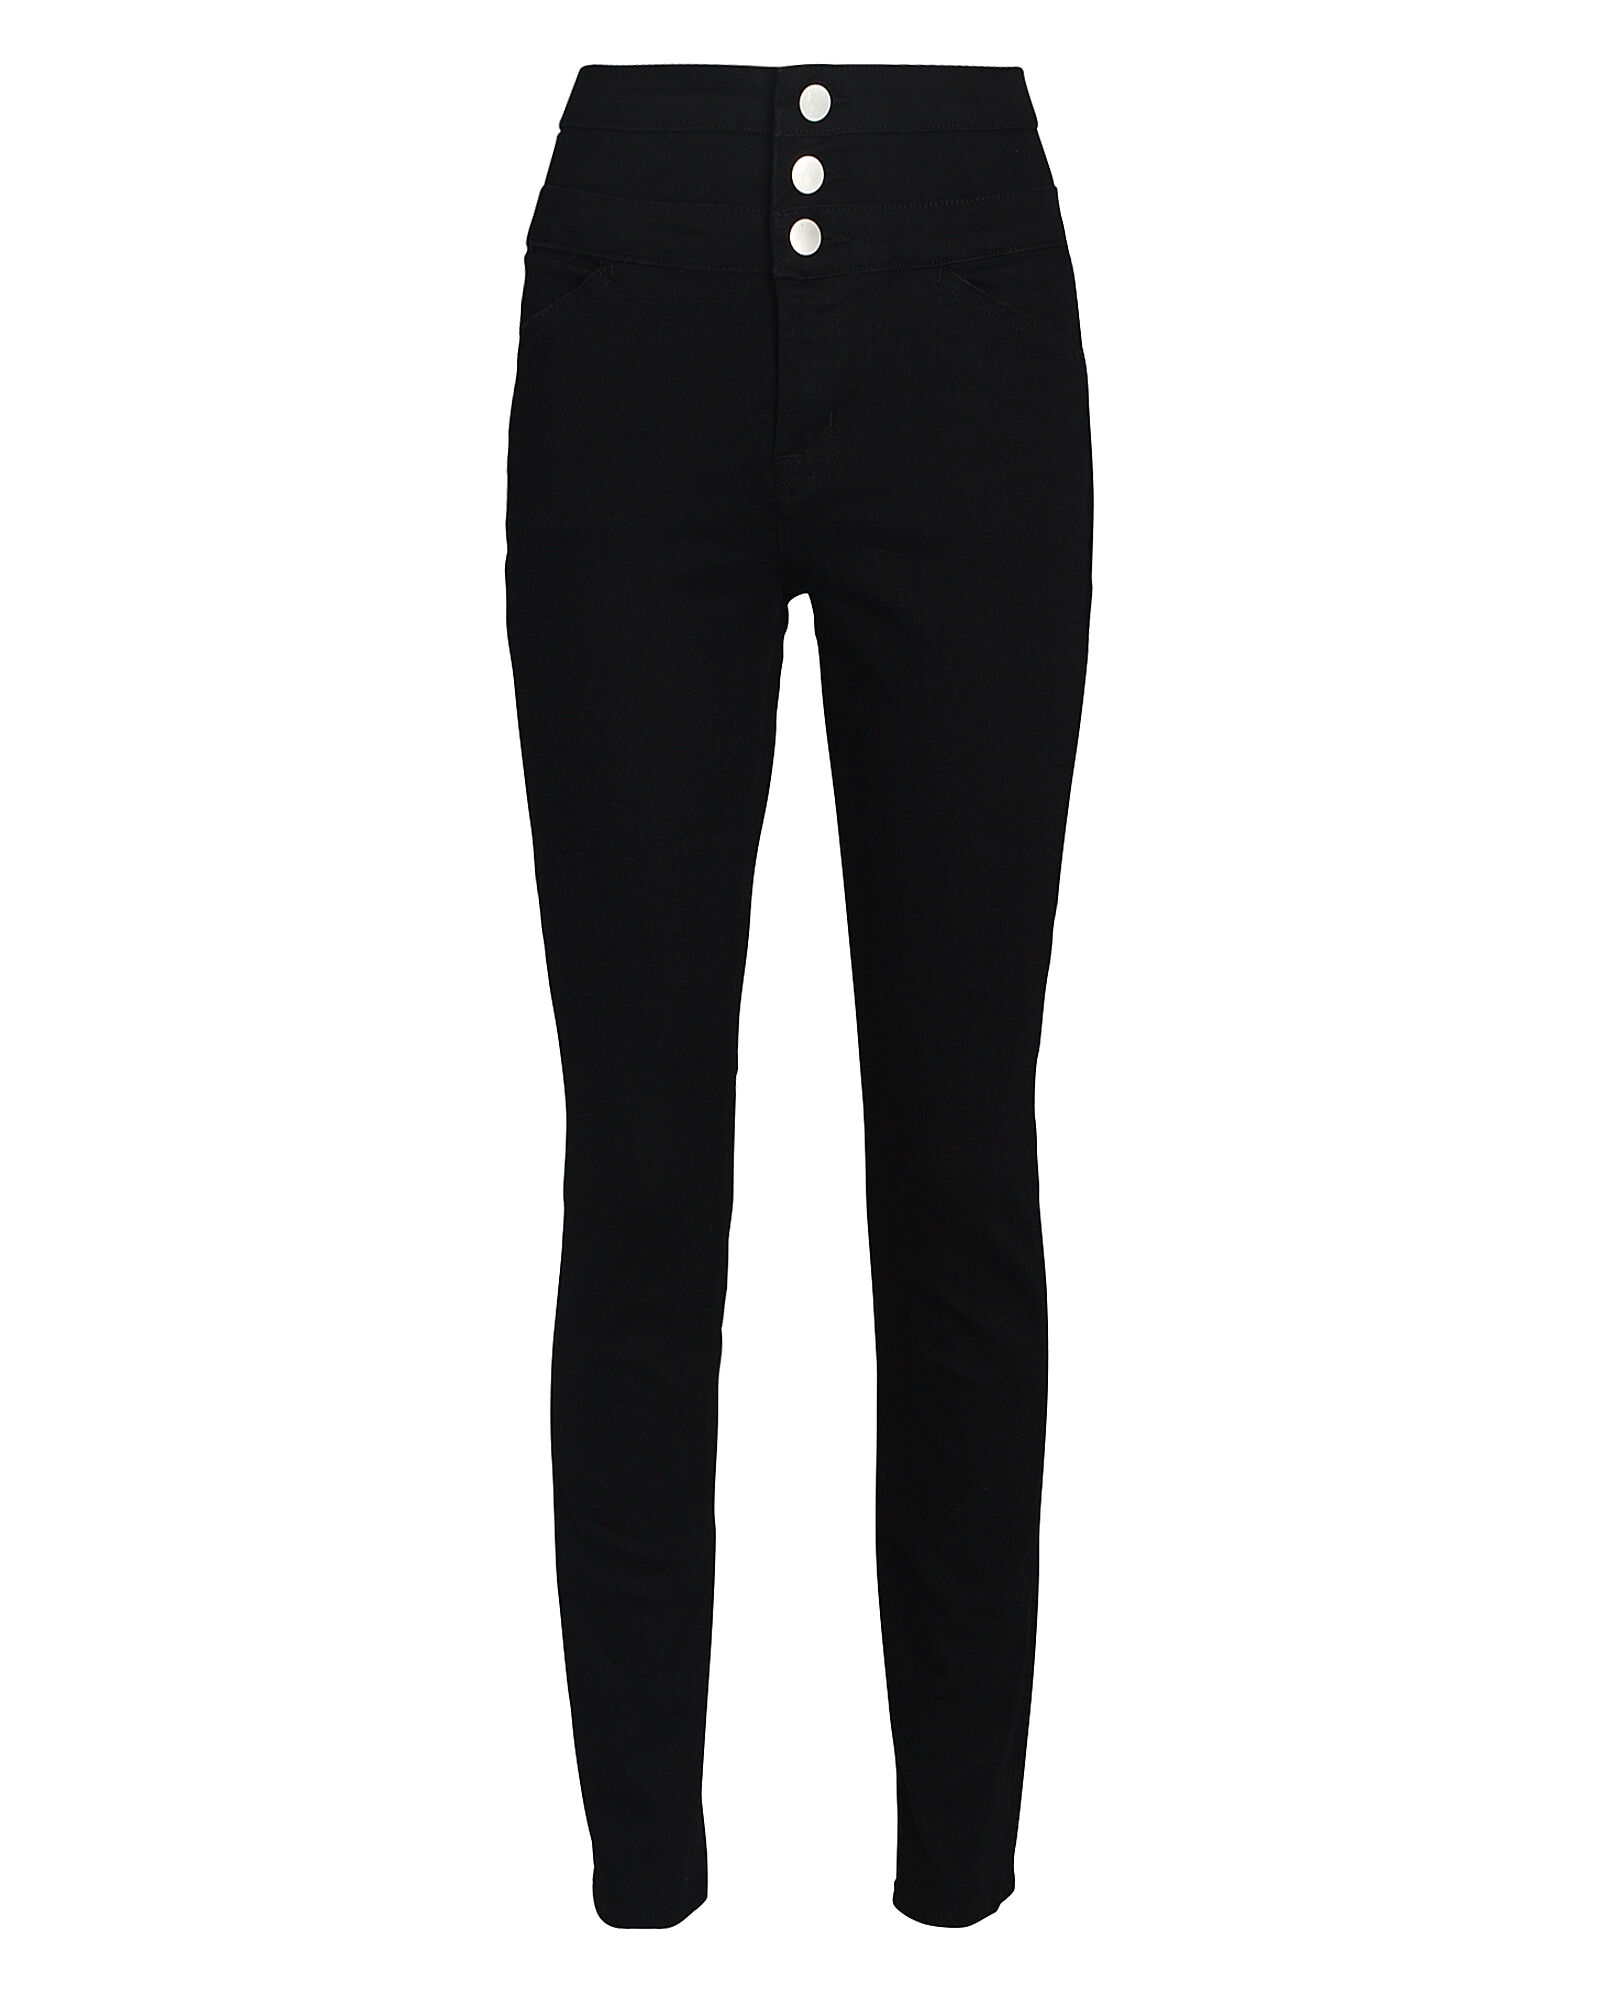 Annalie High-Rise Skinny Jeans, BLACK, hi-res